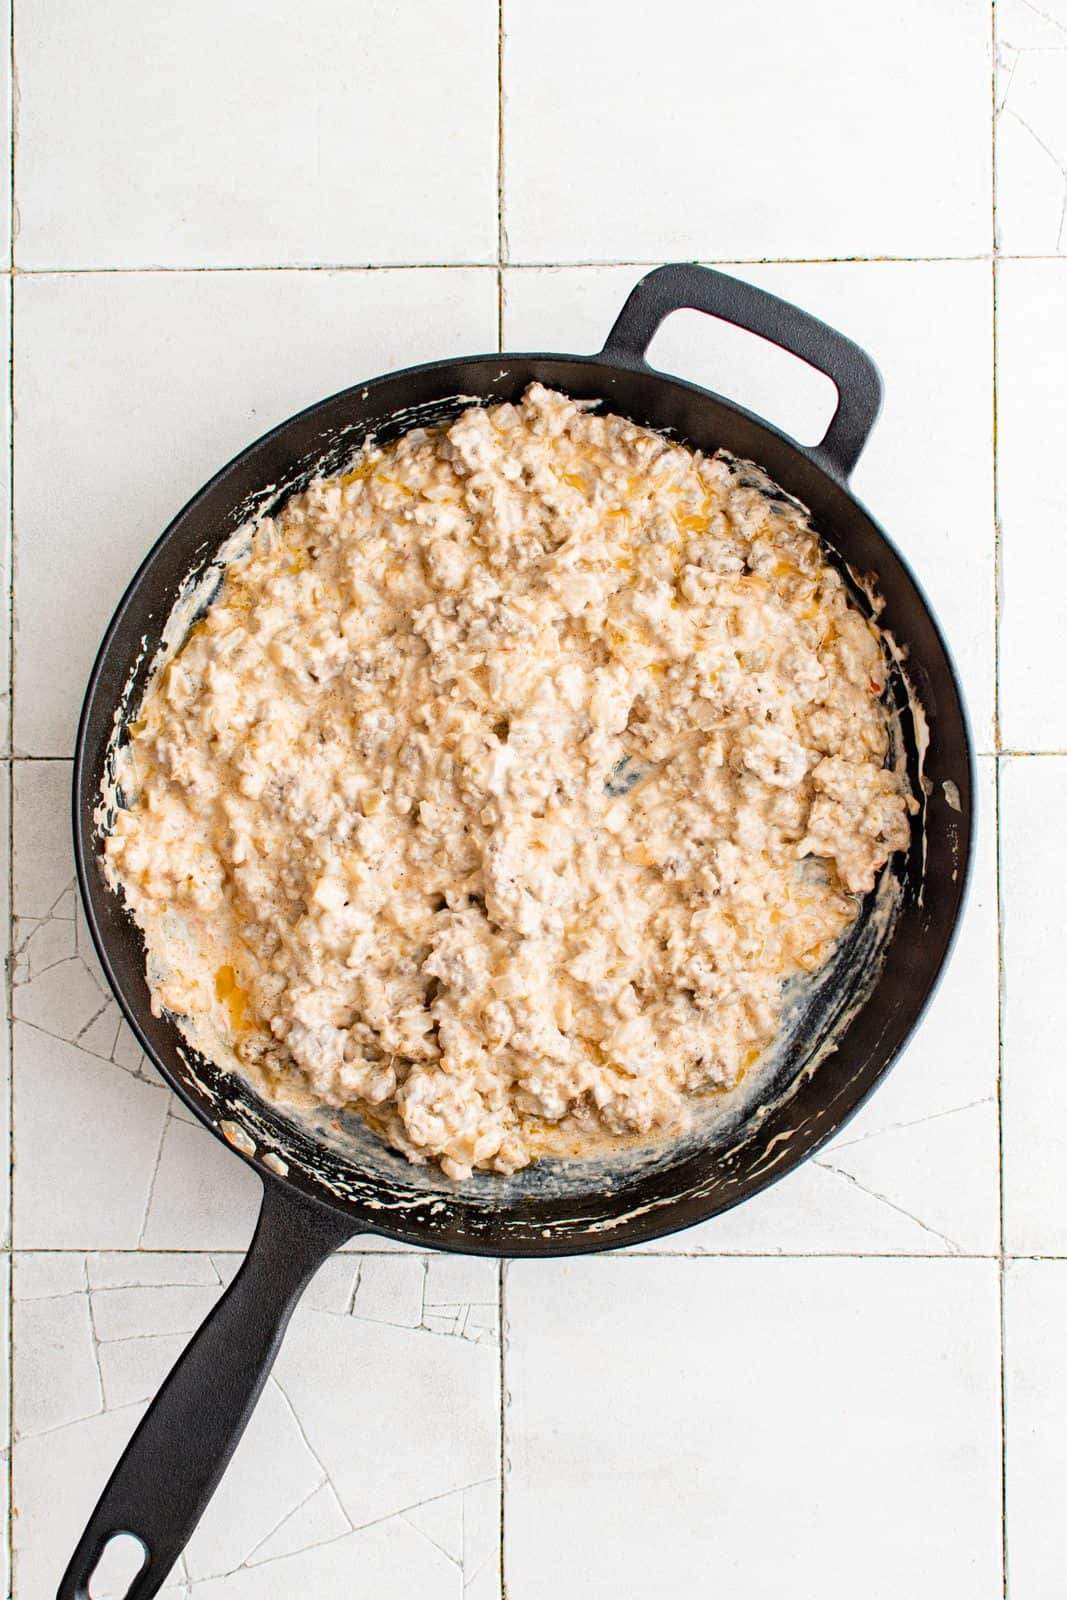 Pie filling ingredients mixed together in pan.